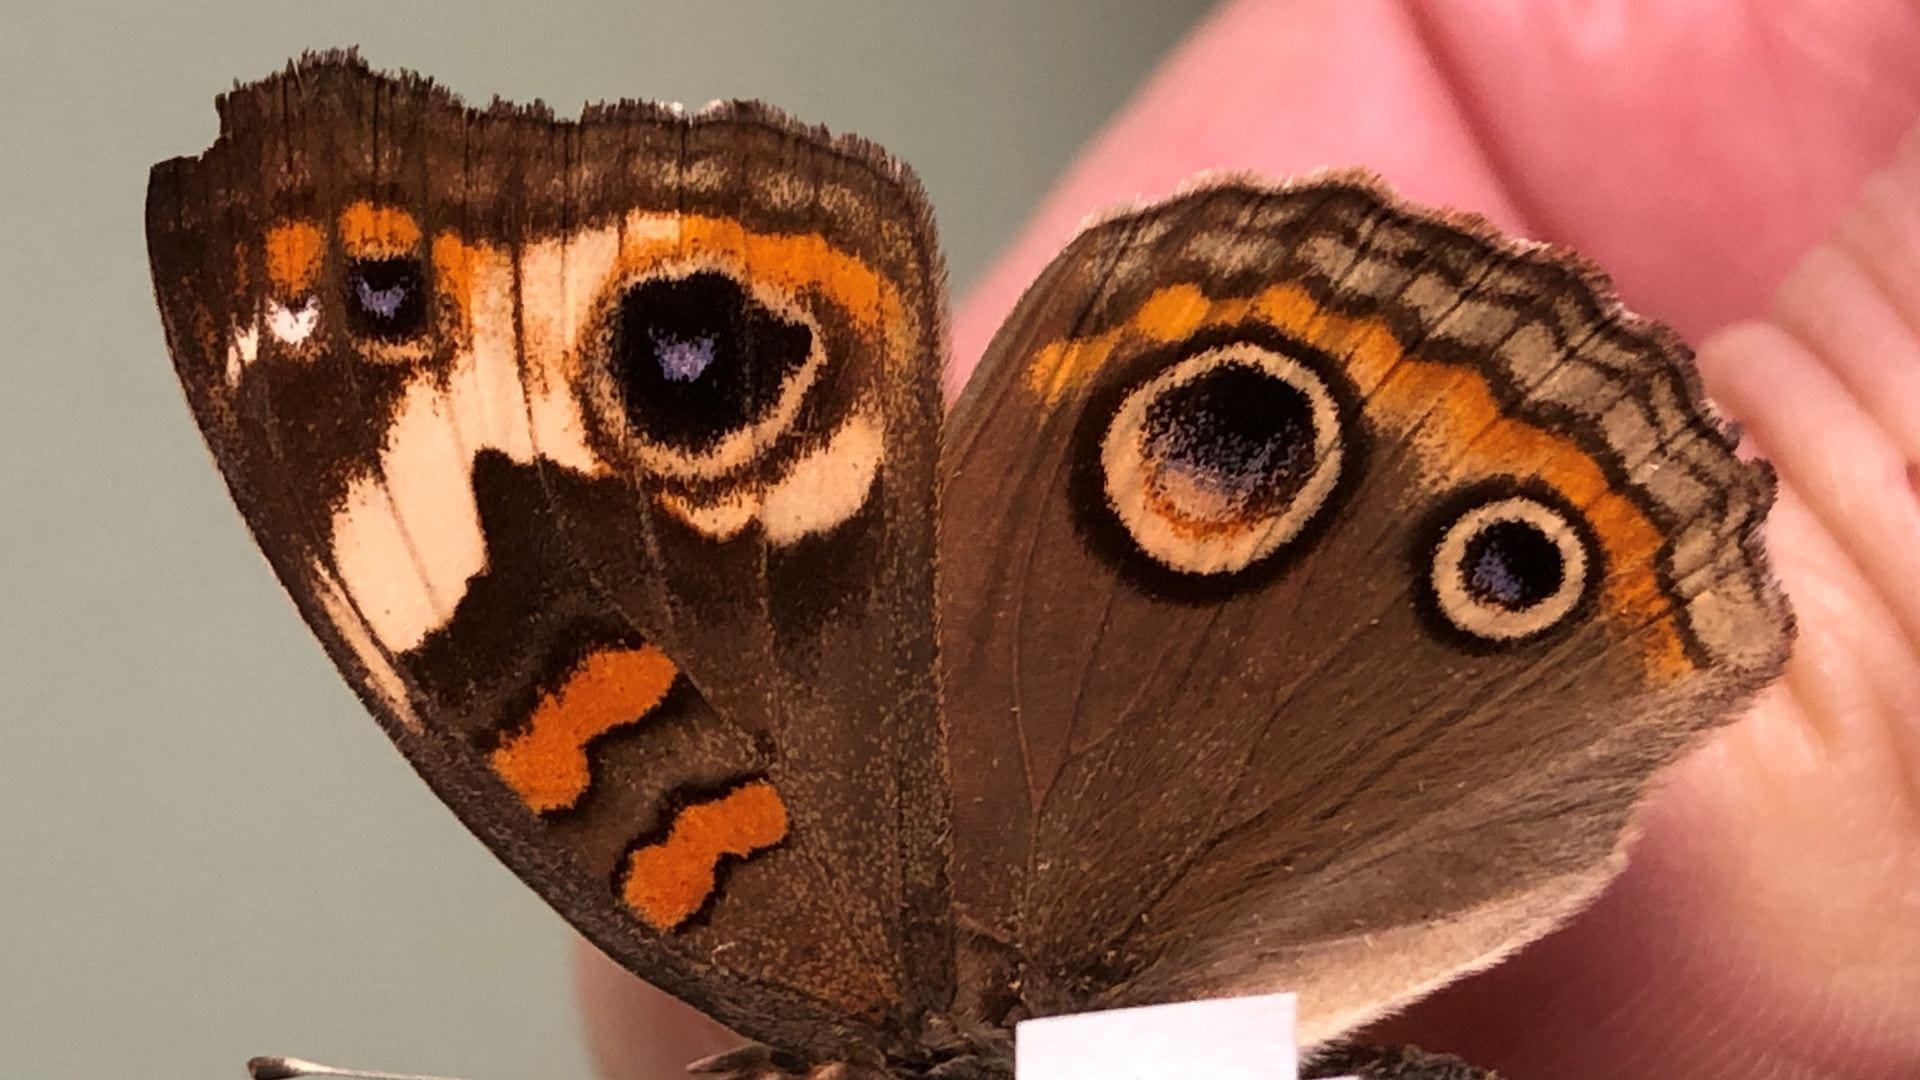 Butterfly specimens recently donated to the Triplehorn collection